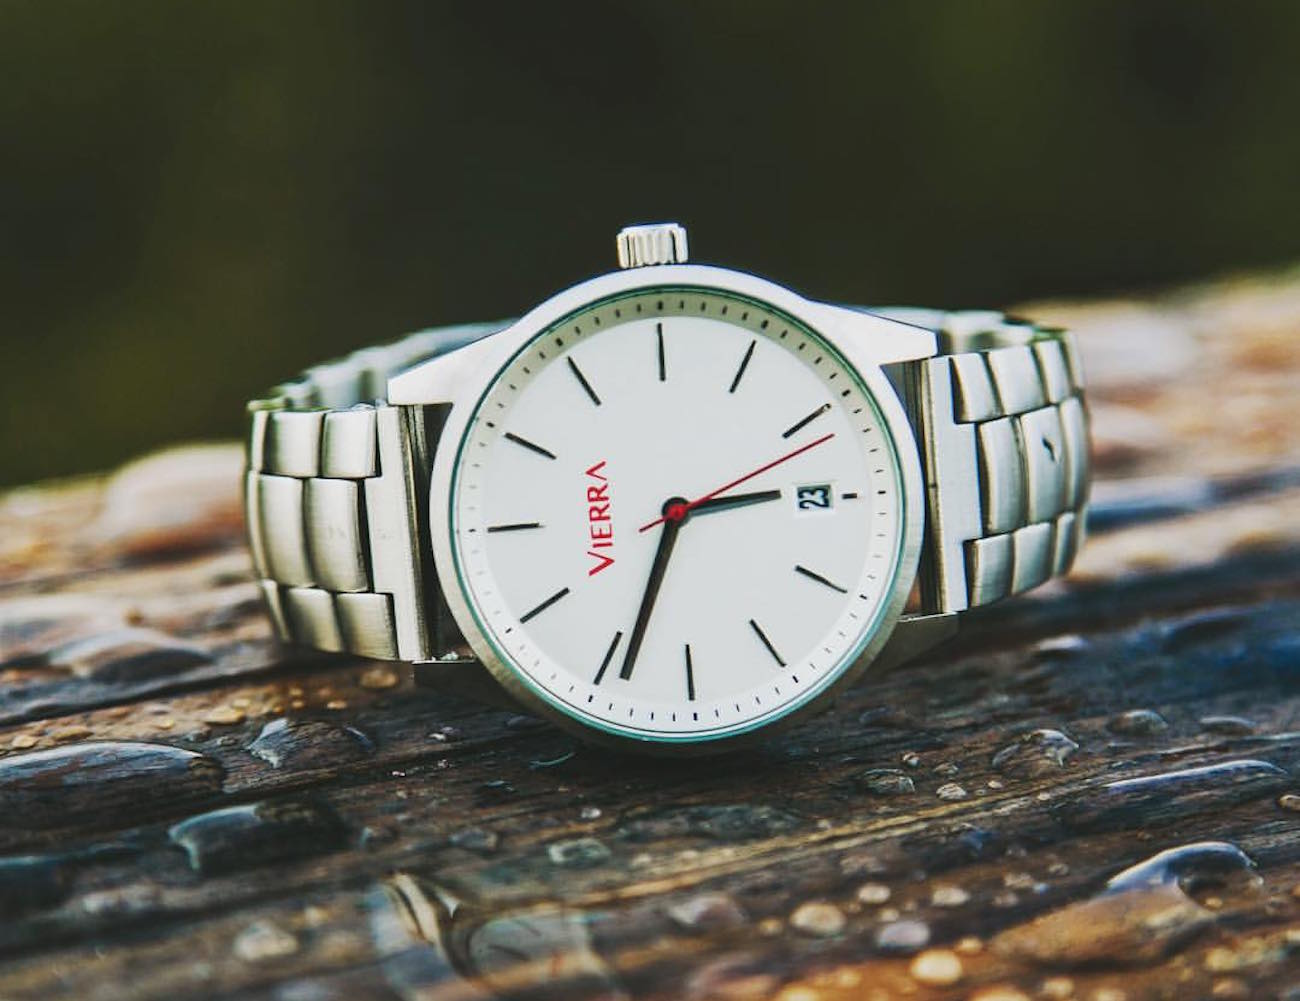 Vierra – The Best Affordable Watch Ever Made